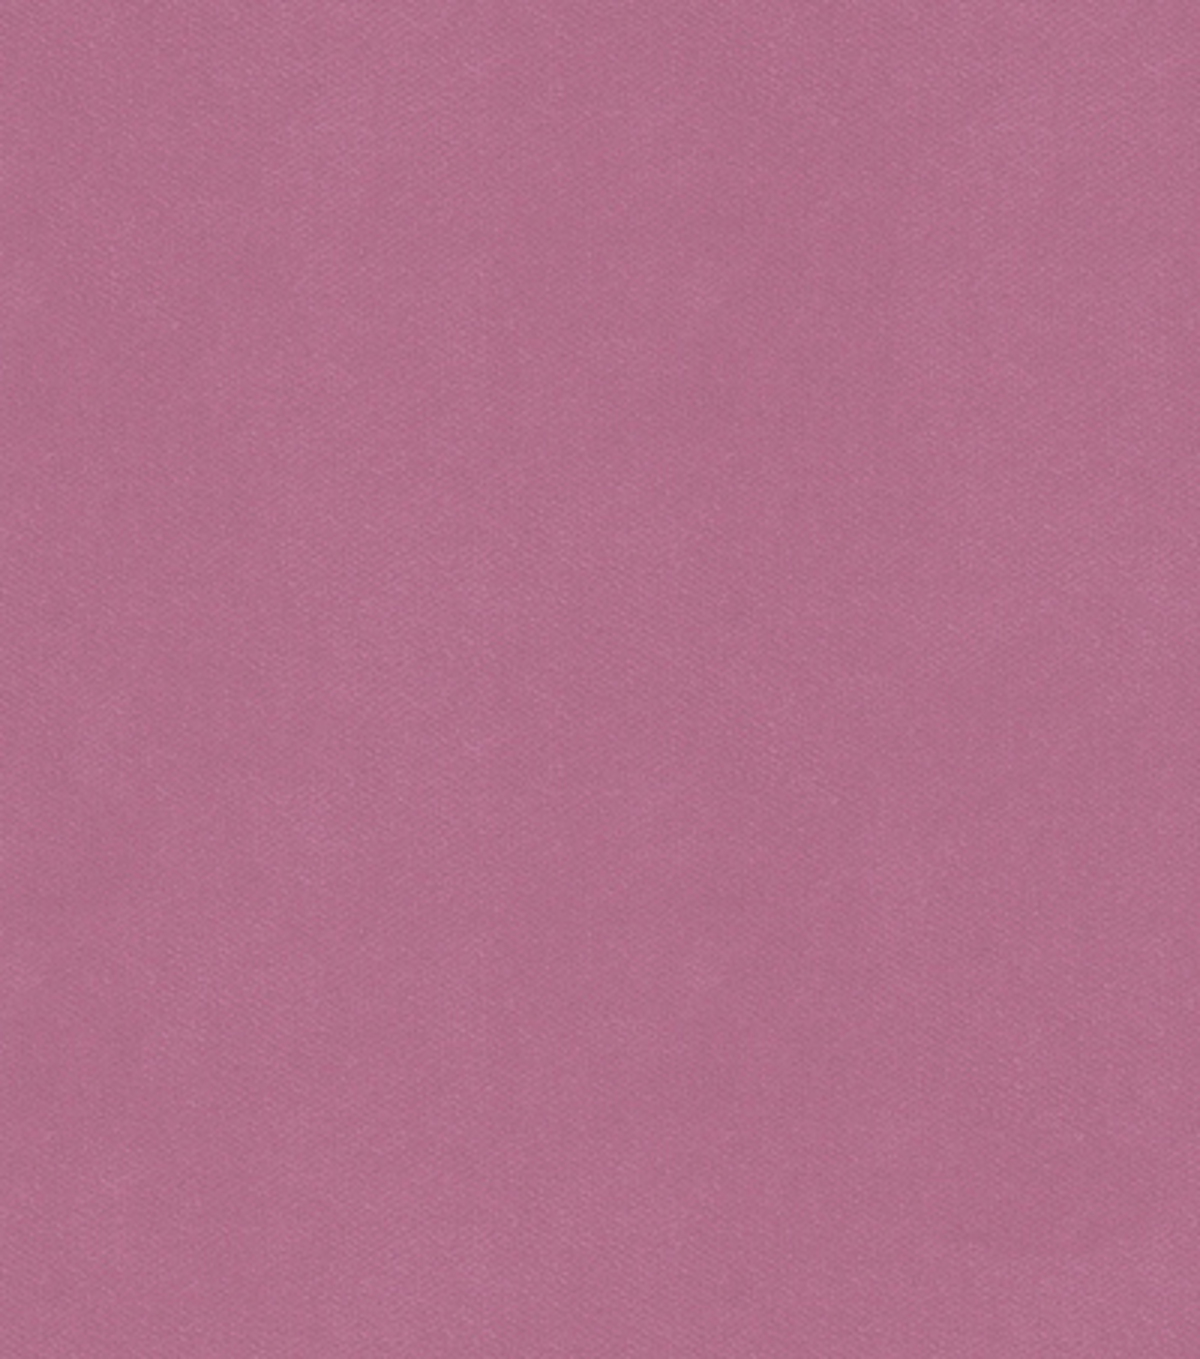 Lightweight Decor Fabric-Como-129-Rose Bisque